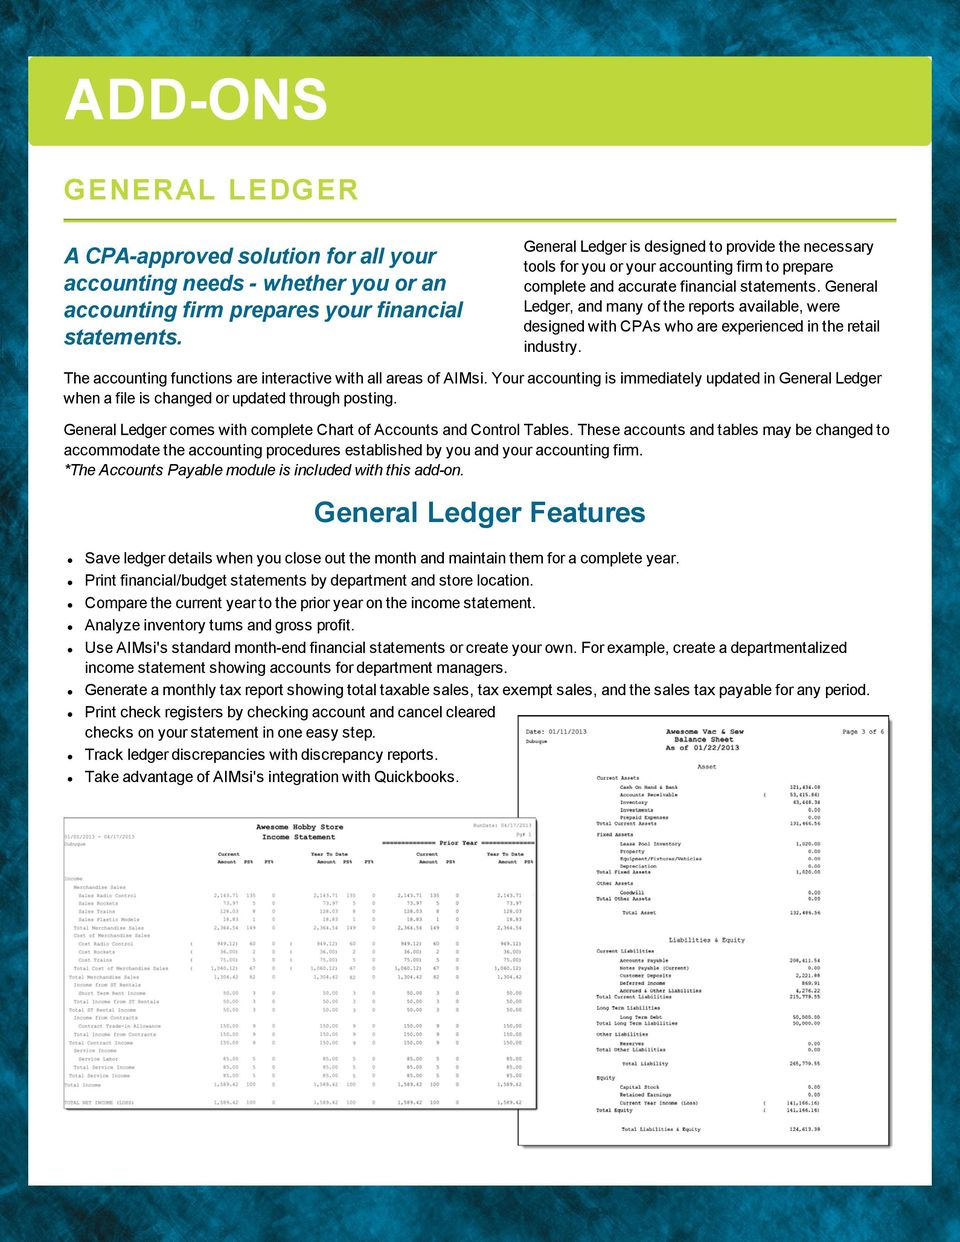 Genera Ledger, and many of the reports avaiabe, were designed with CPAs who are experienced in the retai industry. The accounting functions are interactive with a areas of AIMsi.